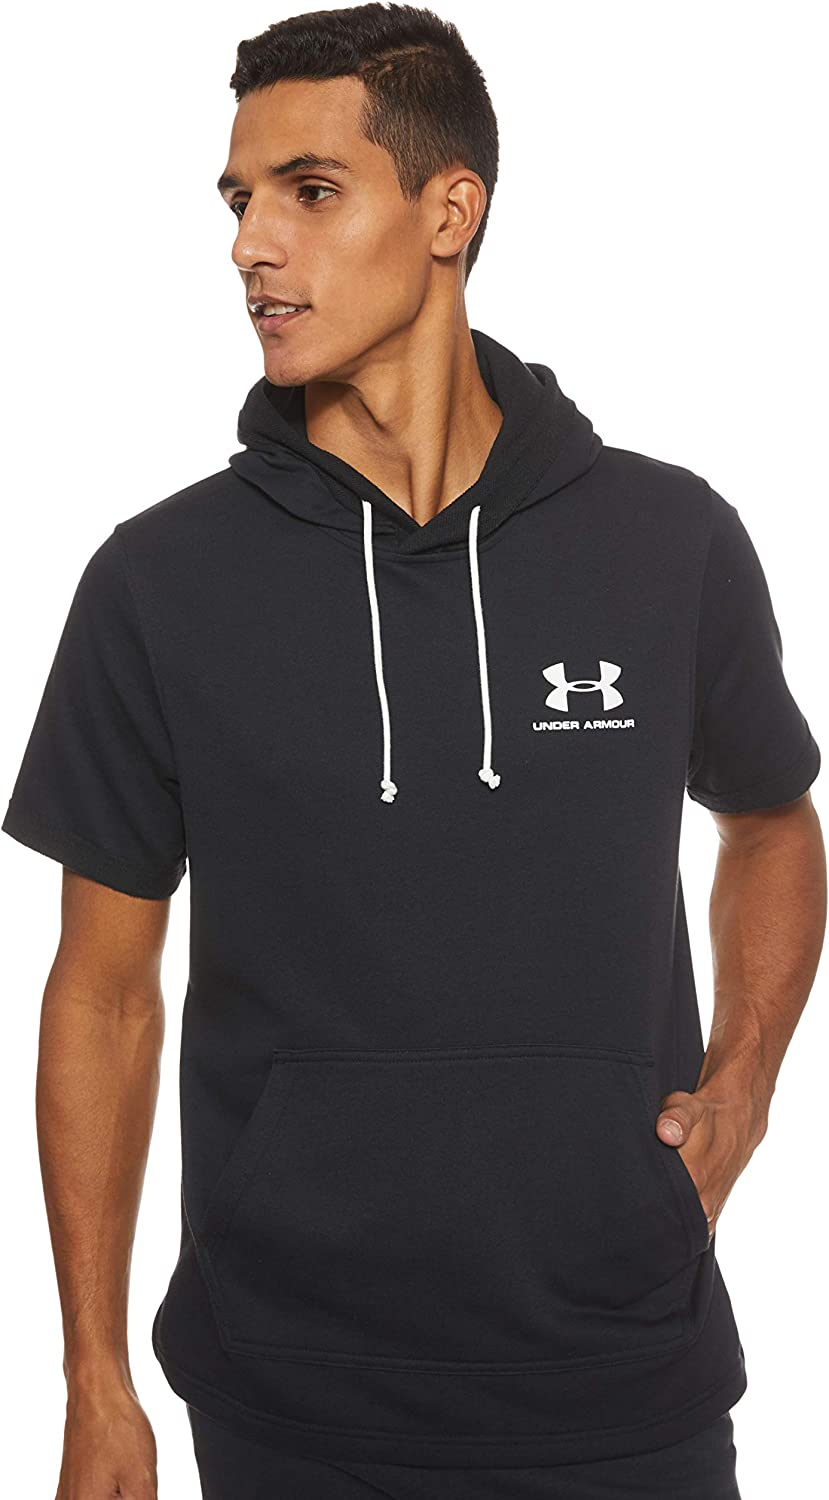 Under Armour Mens Sport Style Ss Hoodie Warm-up Top